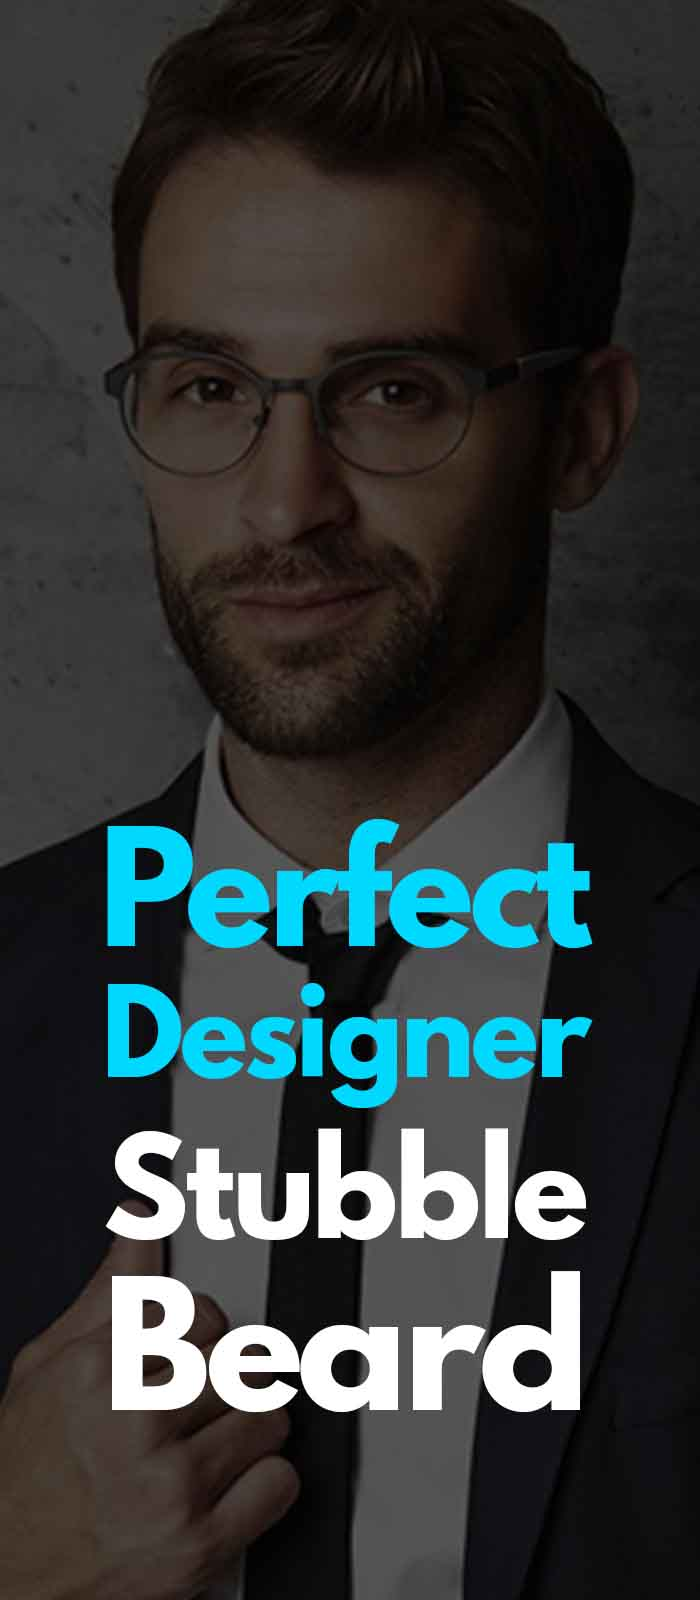 Perfect Designer stubble for men!